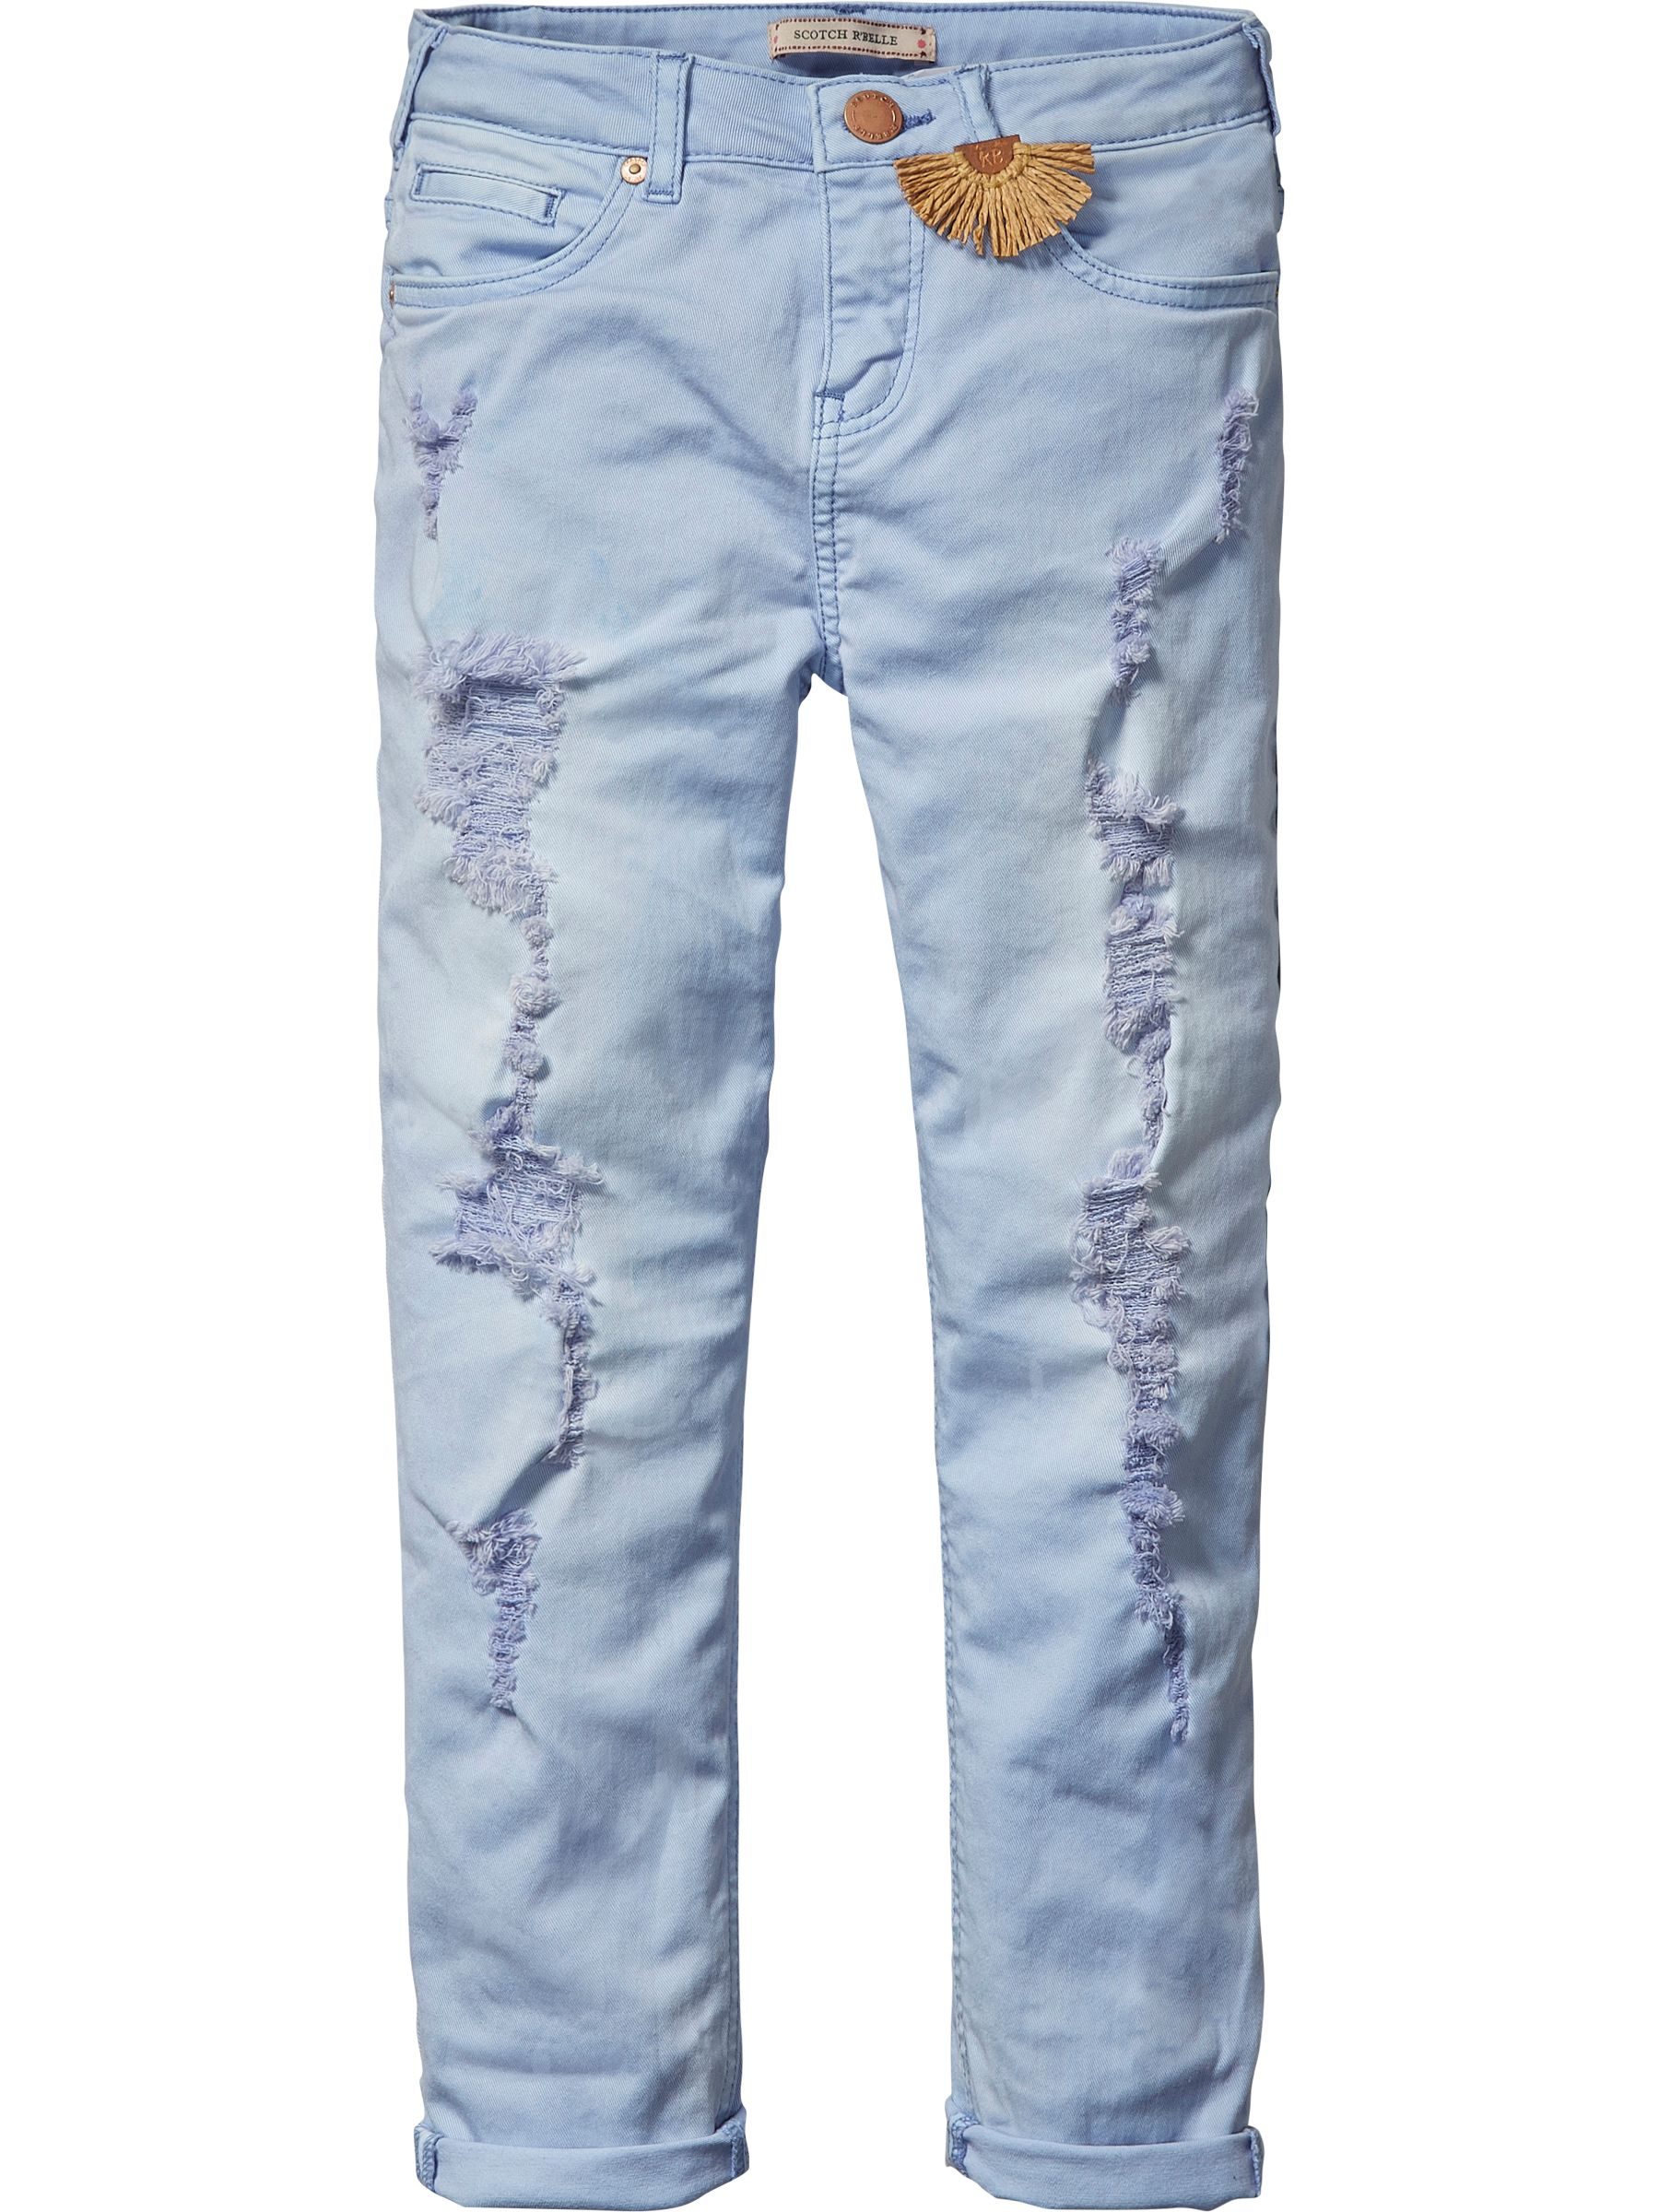 Scotch R'Belle Scotch R'Belle Girls Relaxed Heavy Washed Pants, Blue